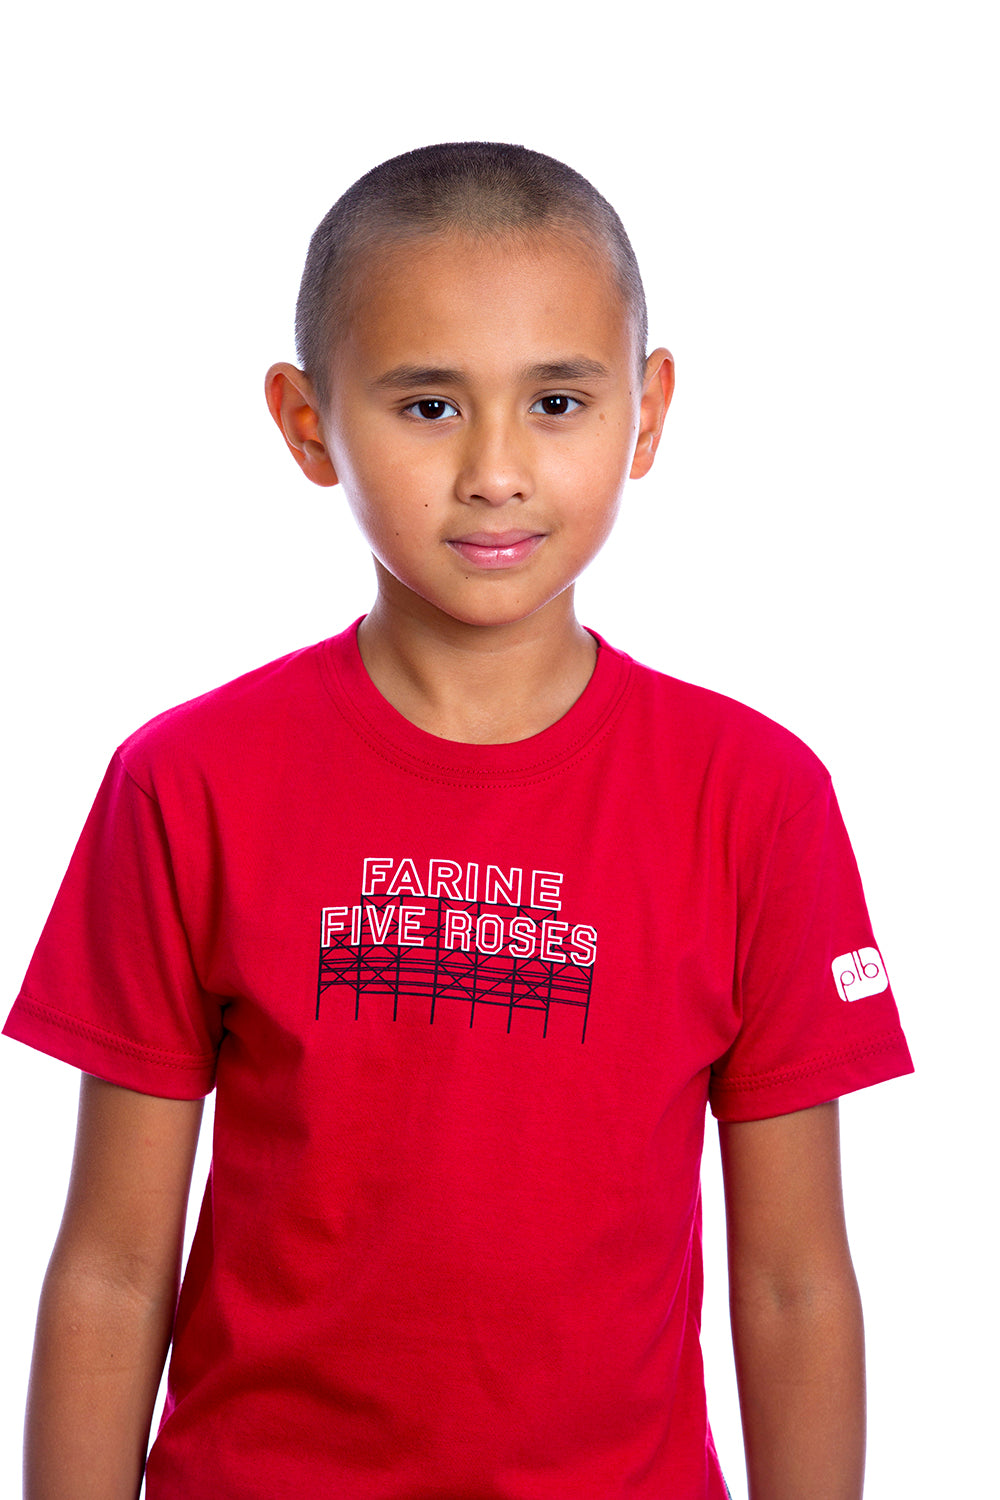 Kids Farine Five Roses Shirt Graphic Tee Tshirt | Organic Red